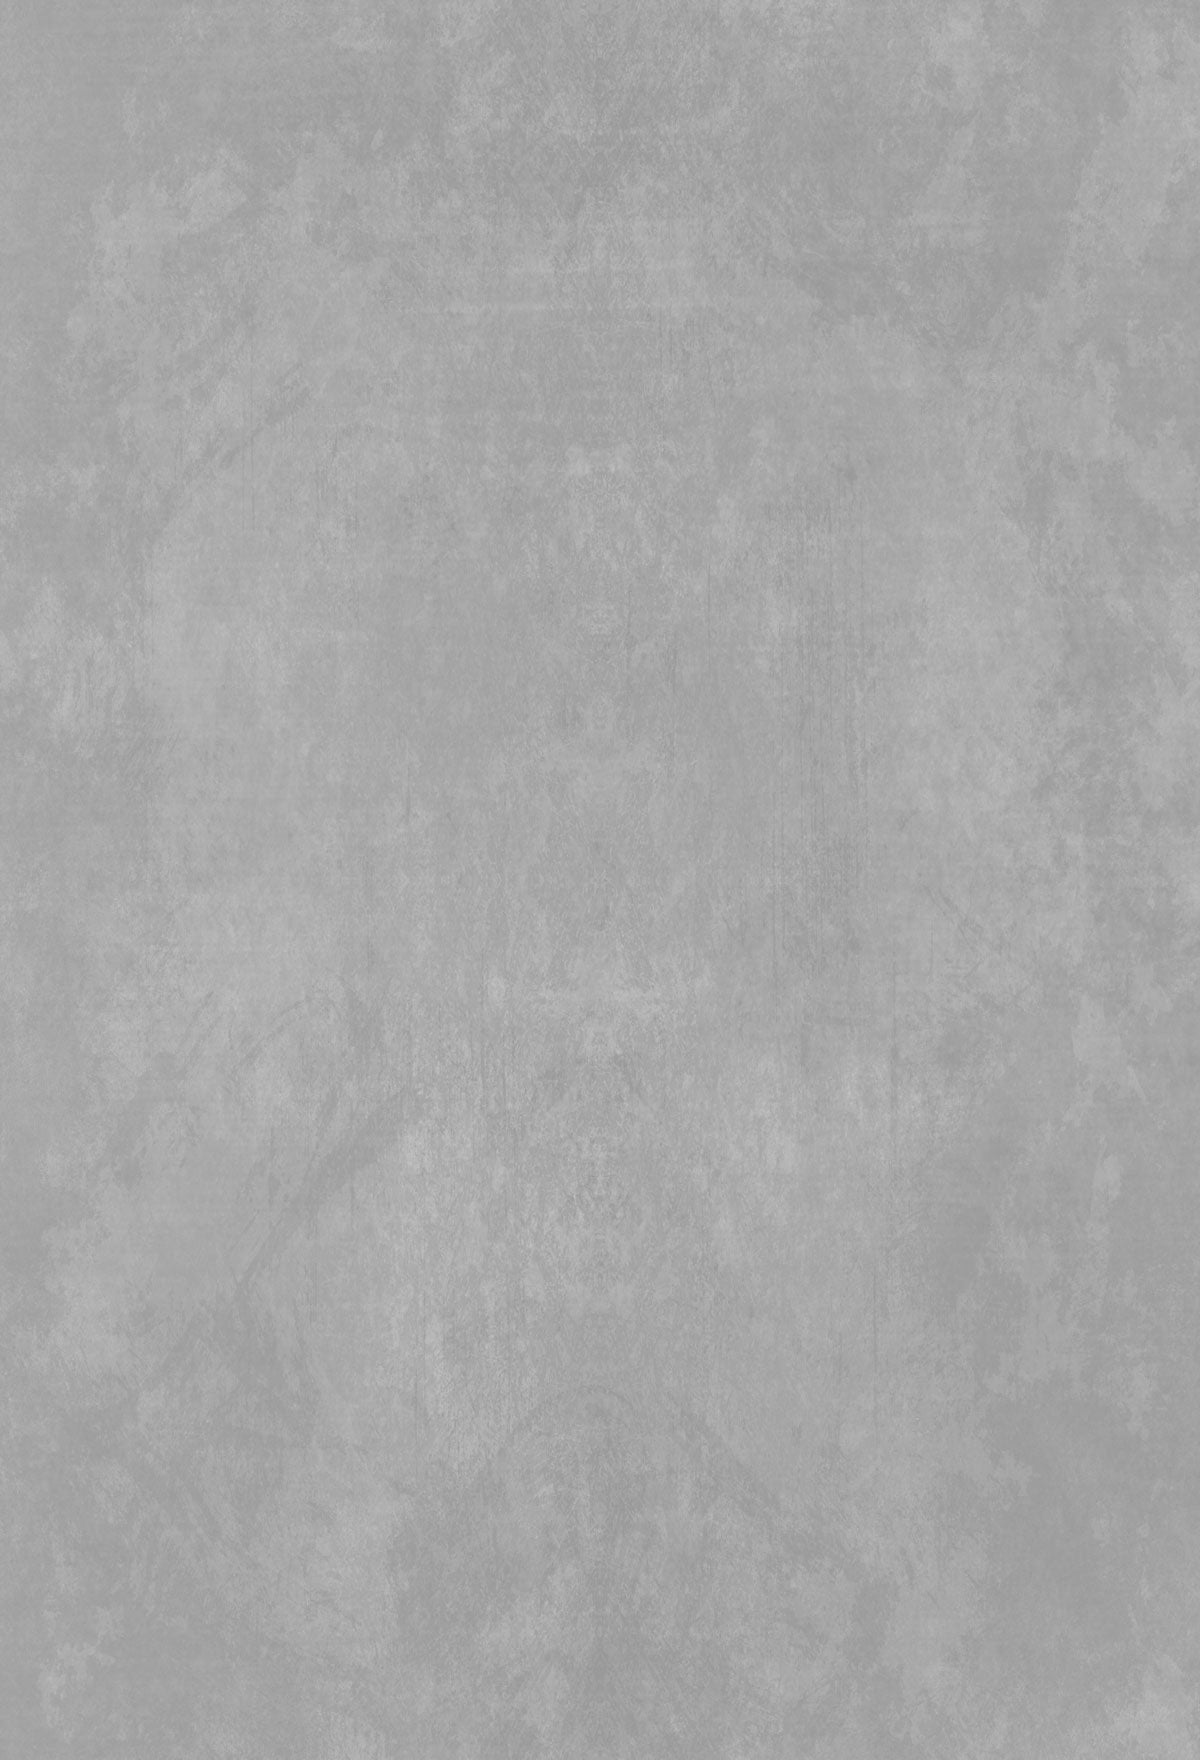 Fox Absract Texture Grey Vinyl Backdrop for Photography-Foxbackdrop